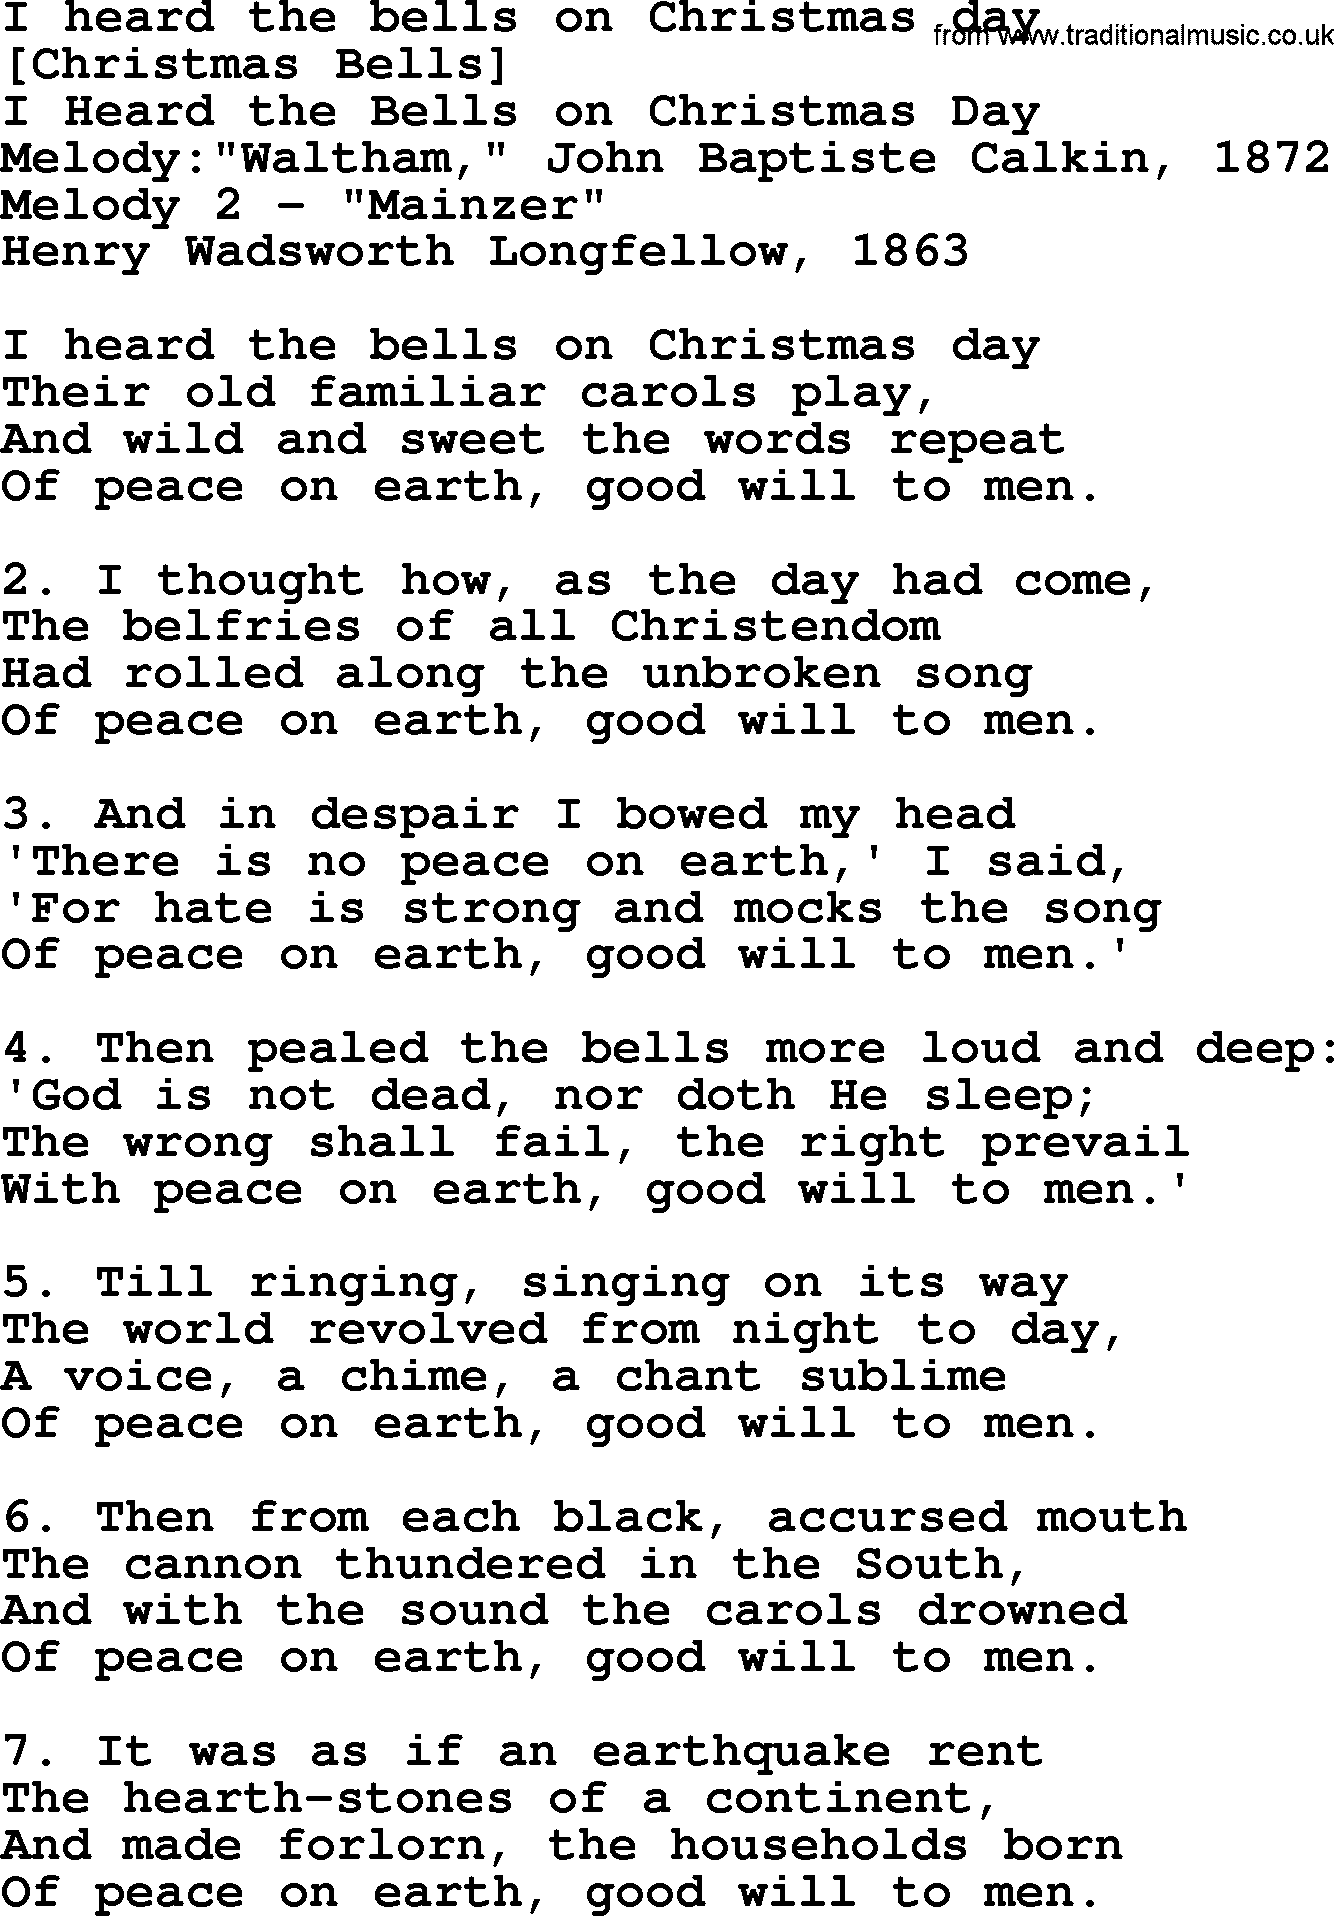 I Heard The Bells On Christmas Day Lyrics.Old American Song Lyrics For I Heard The Bells On